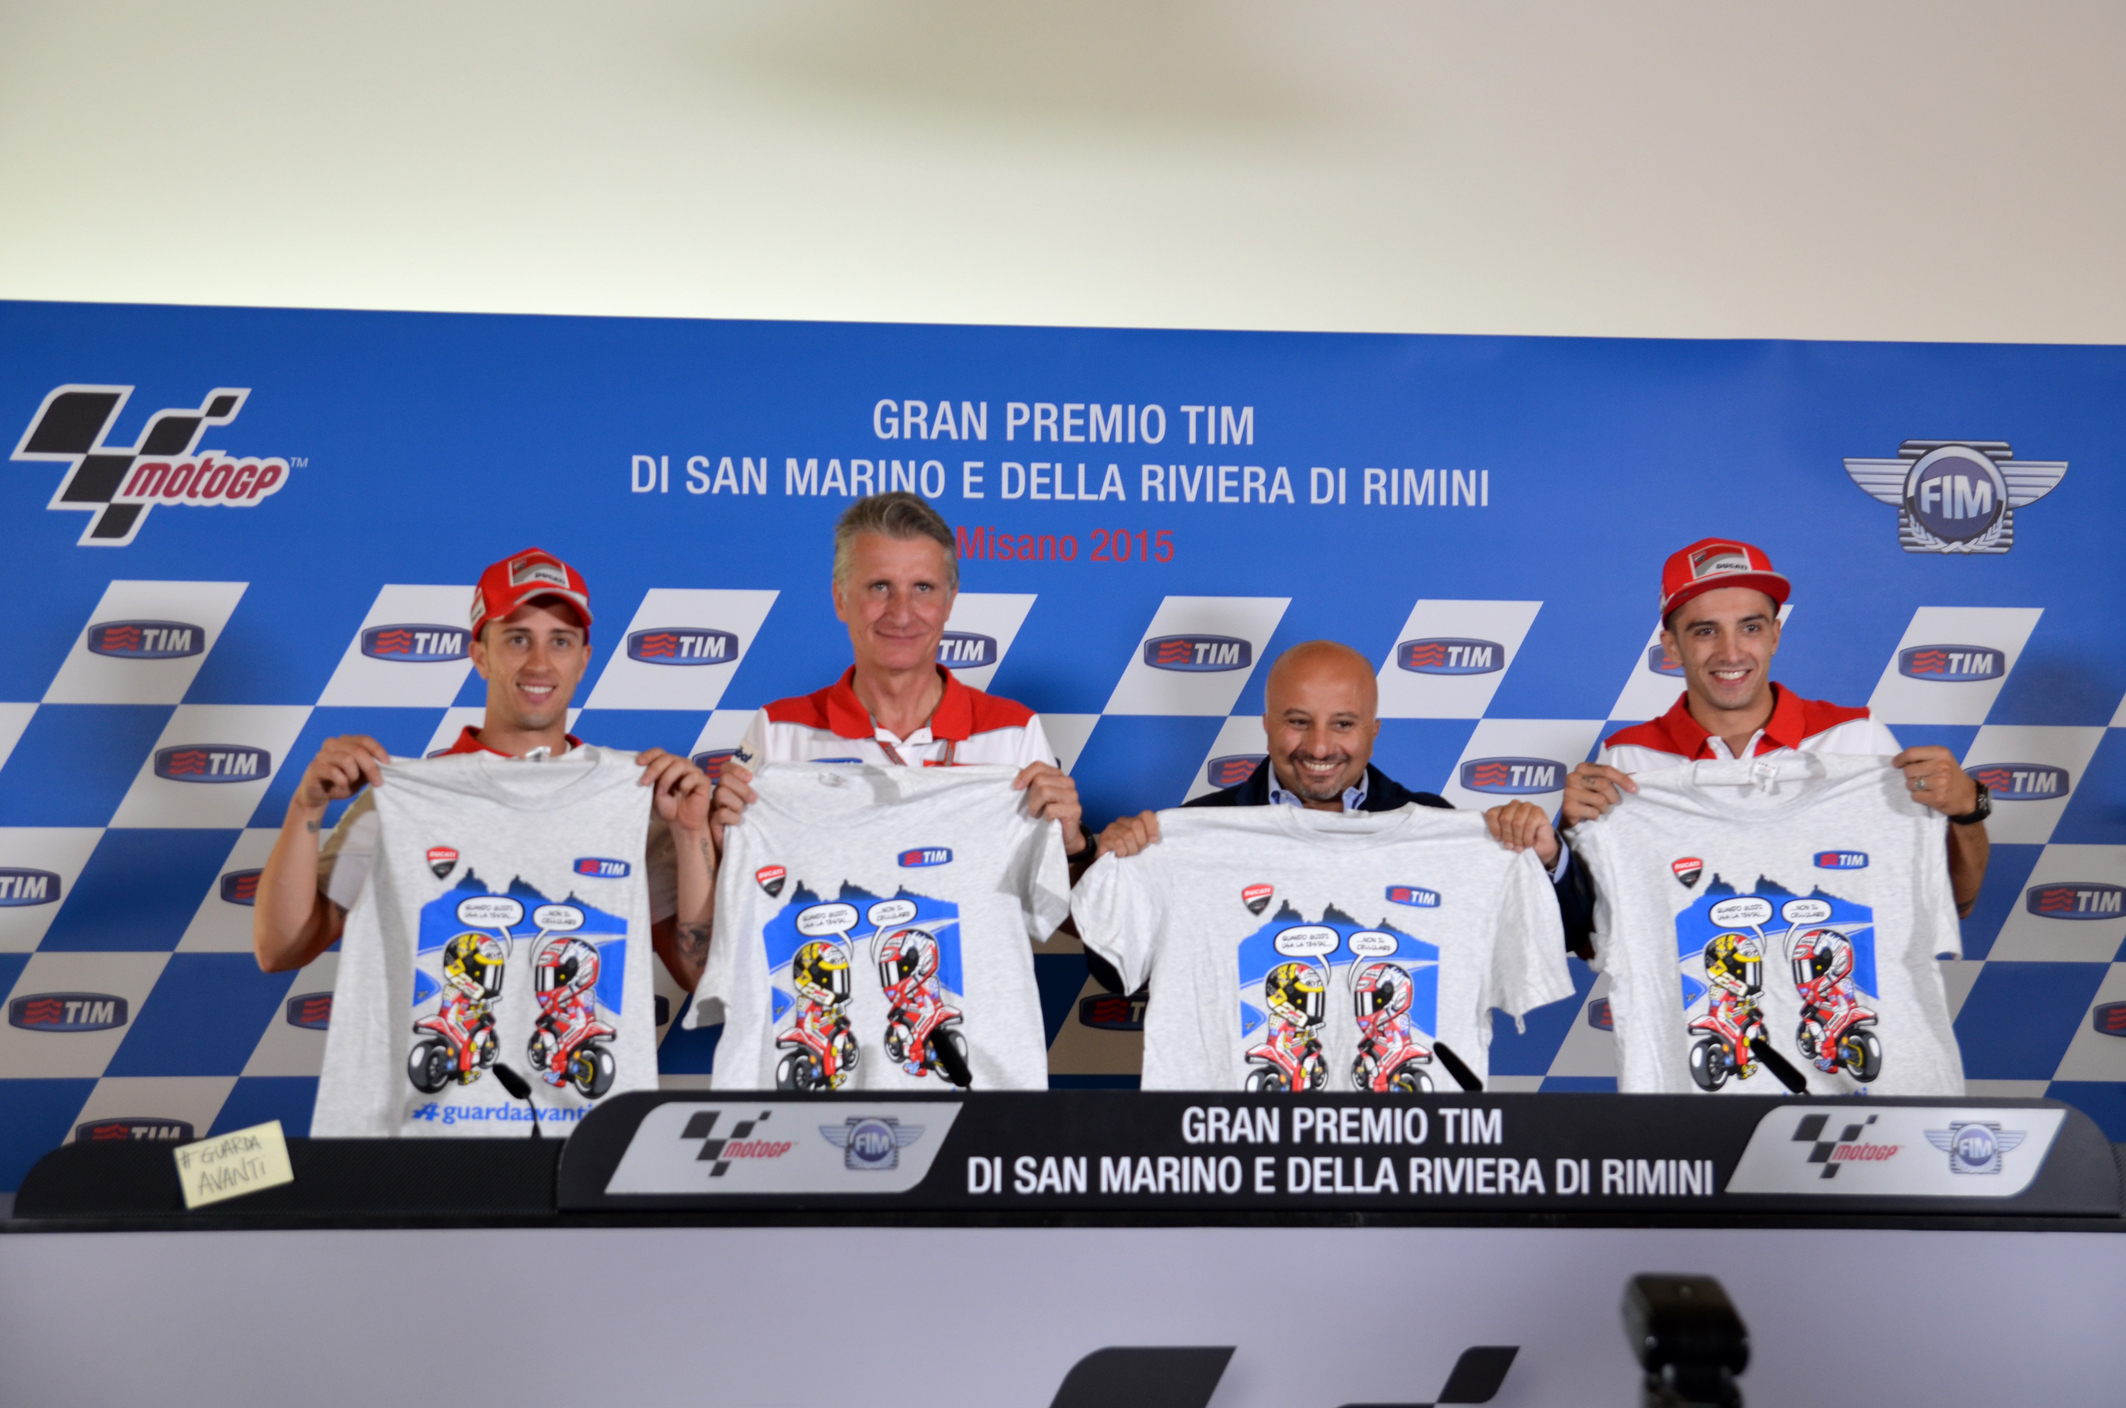 #guardaavanti: TIM e Ducati per la sicurezza